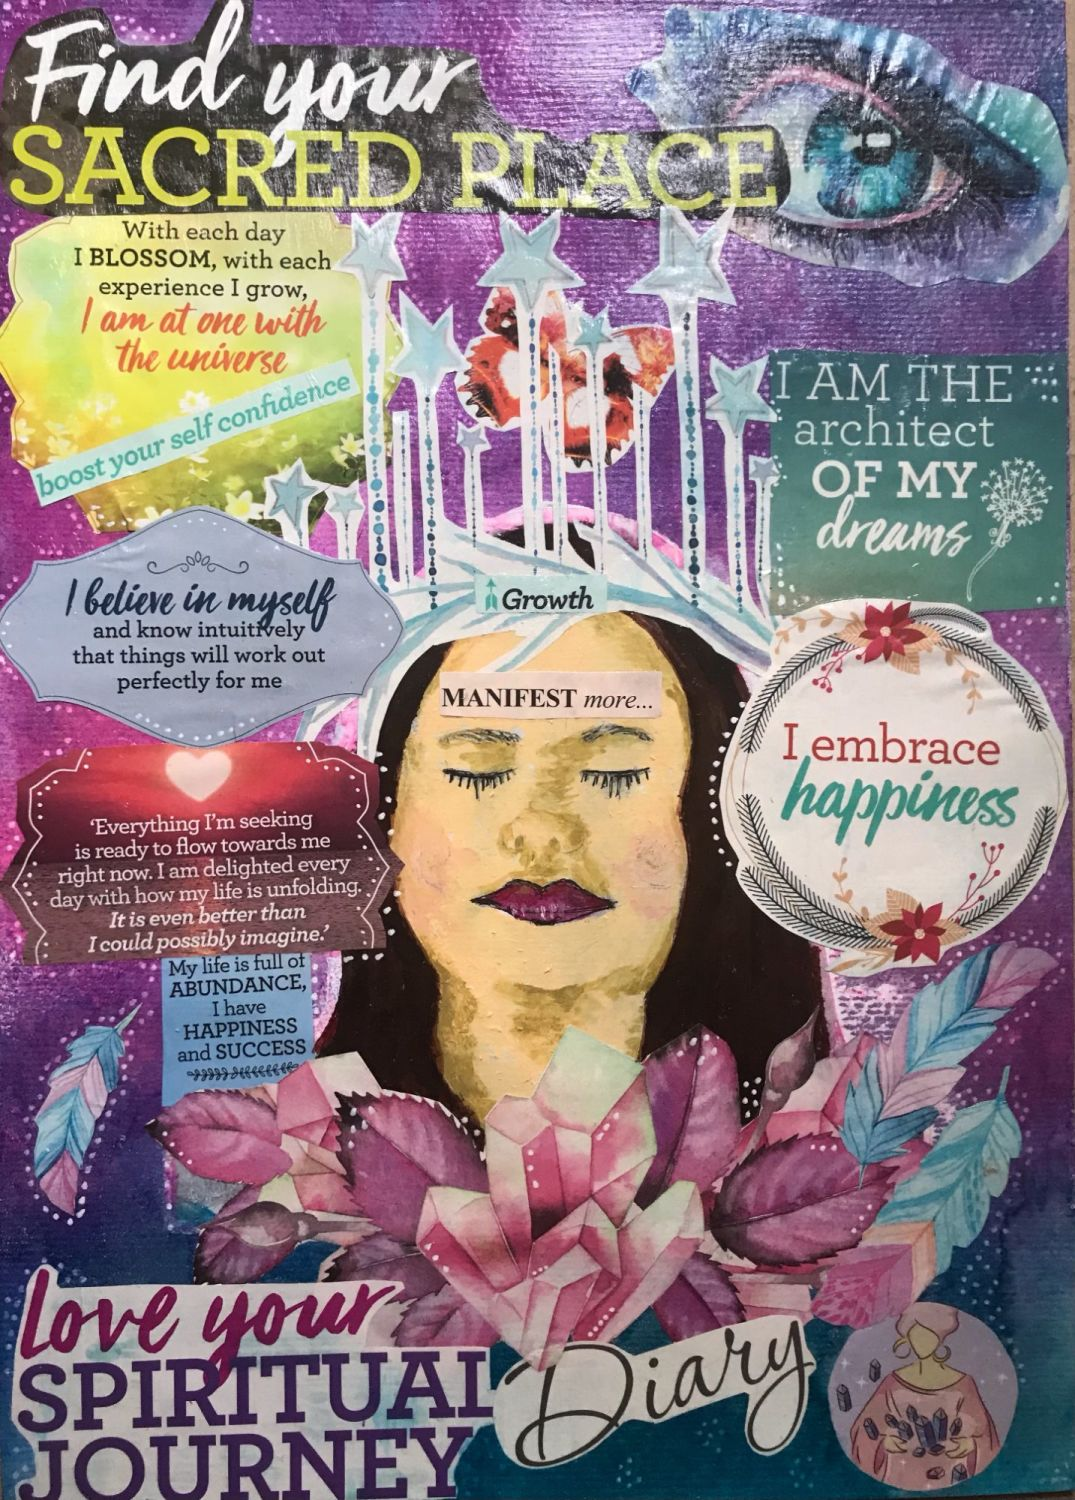 2021-05-30 - Envision Your World....Vision Board Workshop (Sunday 30th May